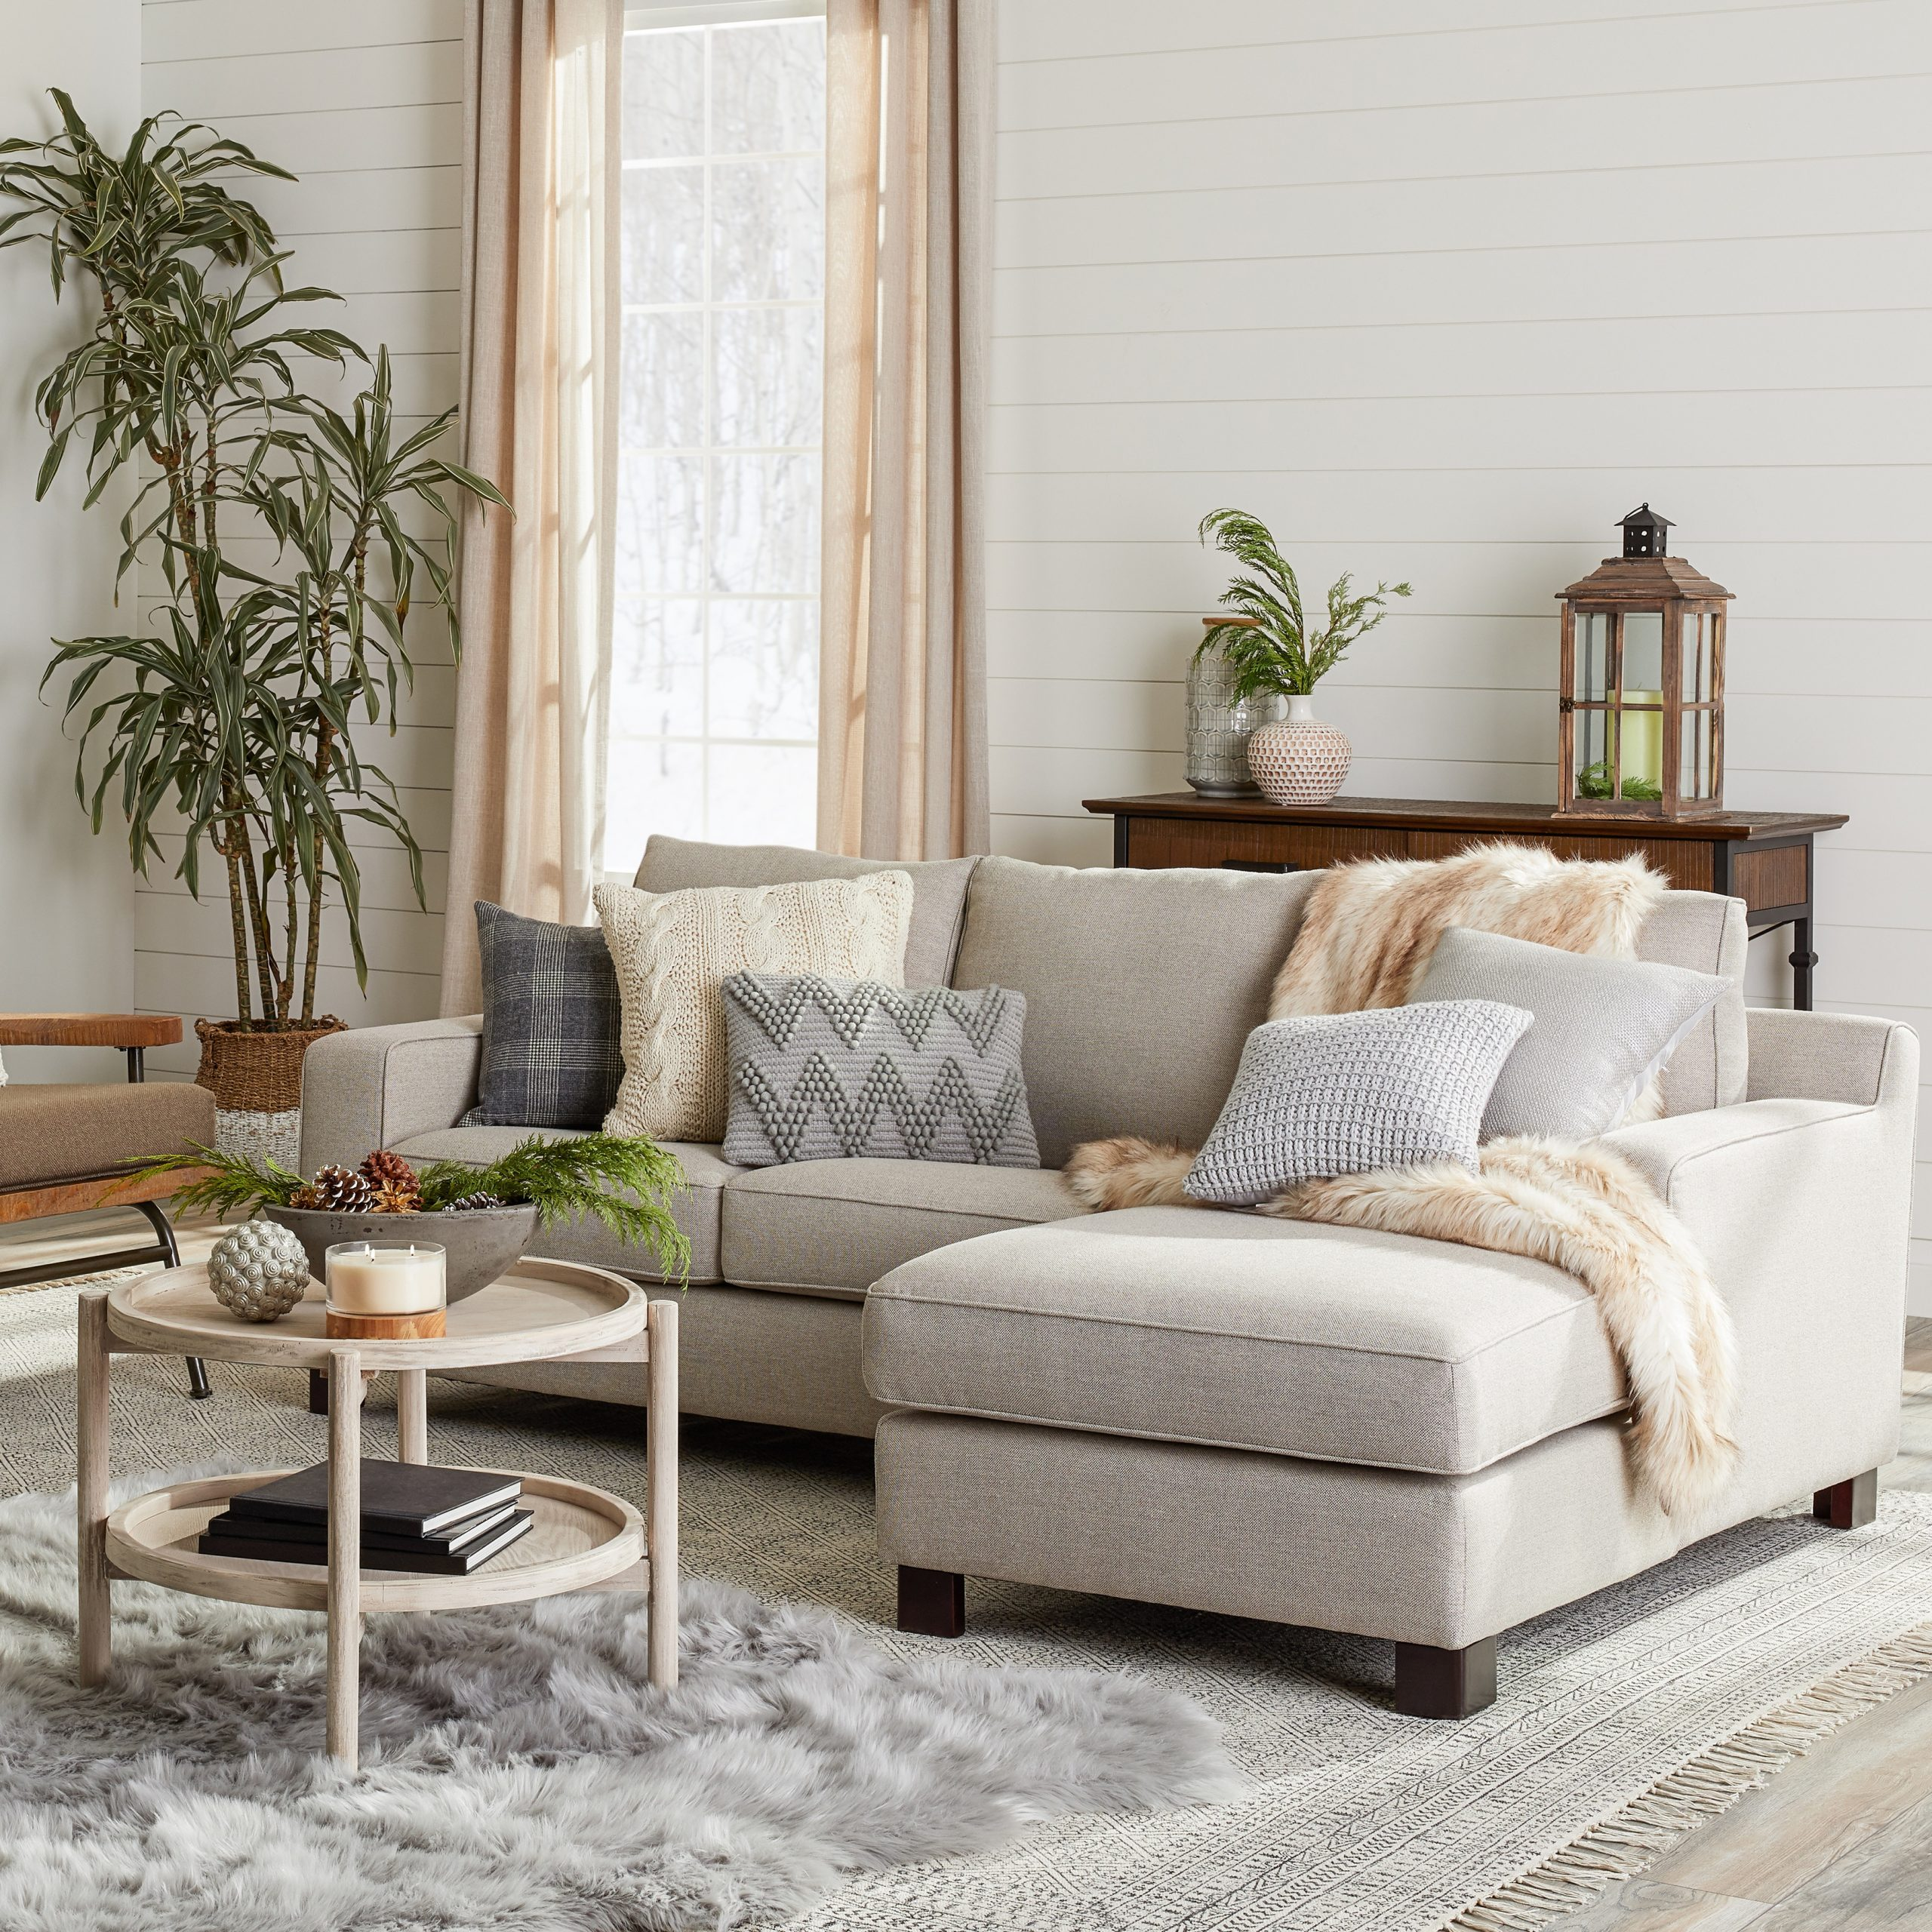 Gray Tweed Sectional Sofa Dante Sectional Sofa With Chaise In 2Pc Crowningshield Contemporary Chaise Sofas Light Gray (View 11 of 15)